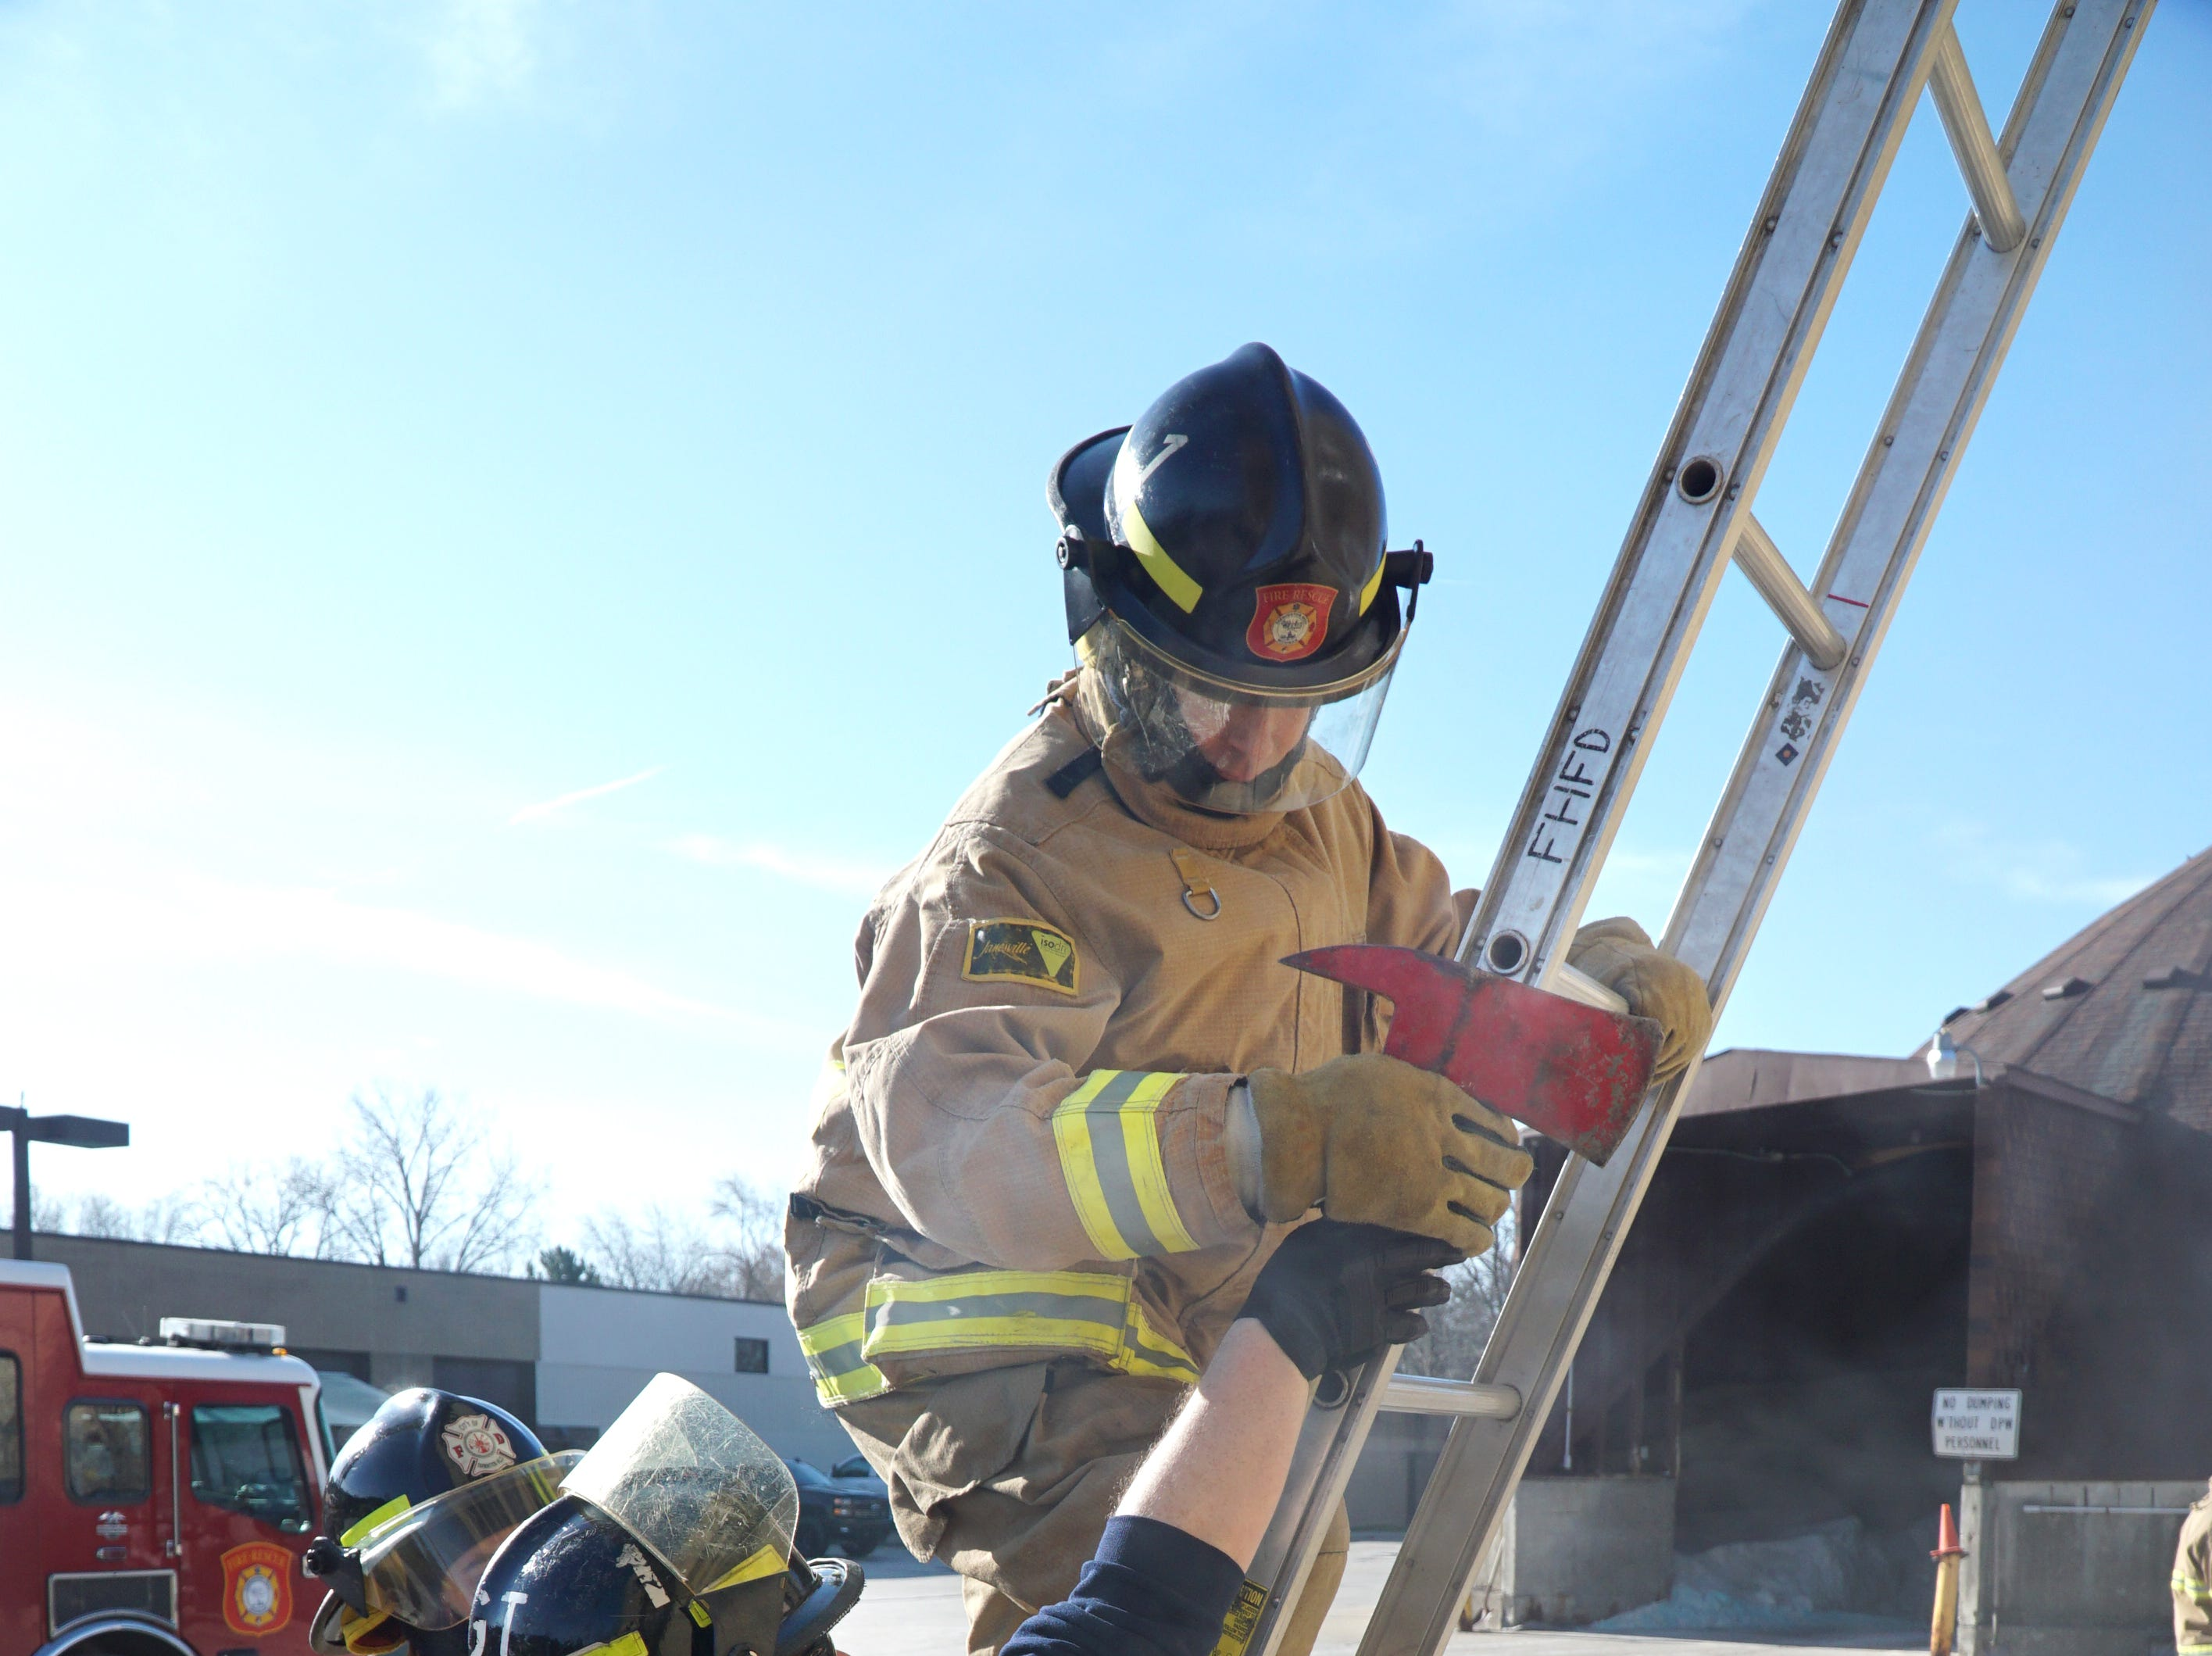 Andrew Staub, center, was teaching recruits how to position and climb ladders while fighting fires.